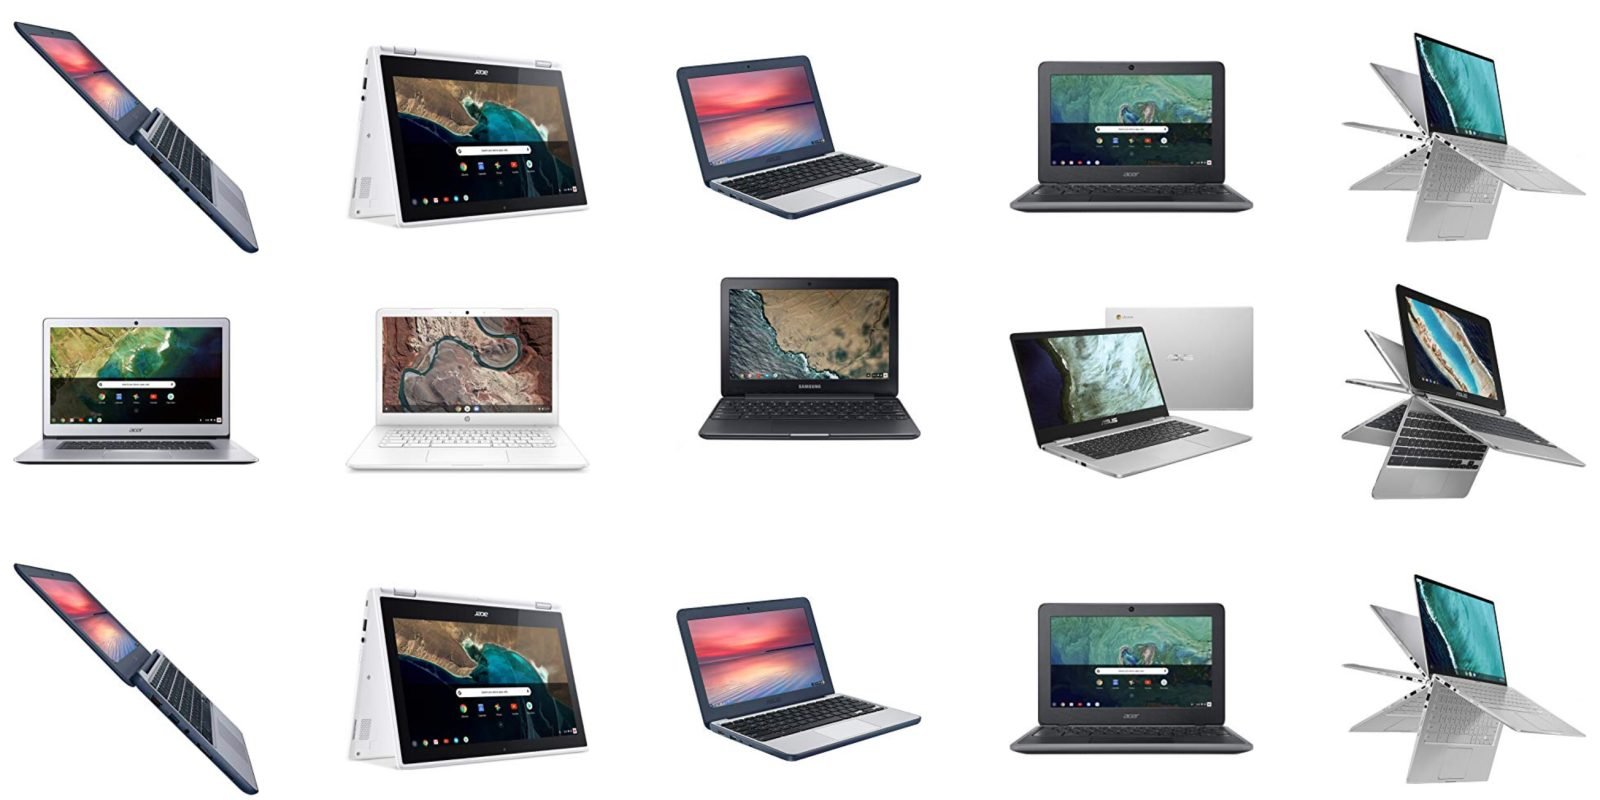 Chromebook Cyber Monday Gold Box: HP, Samsung, Asus, Acer starting at $120